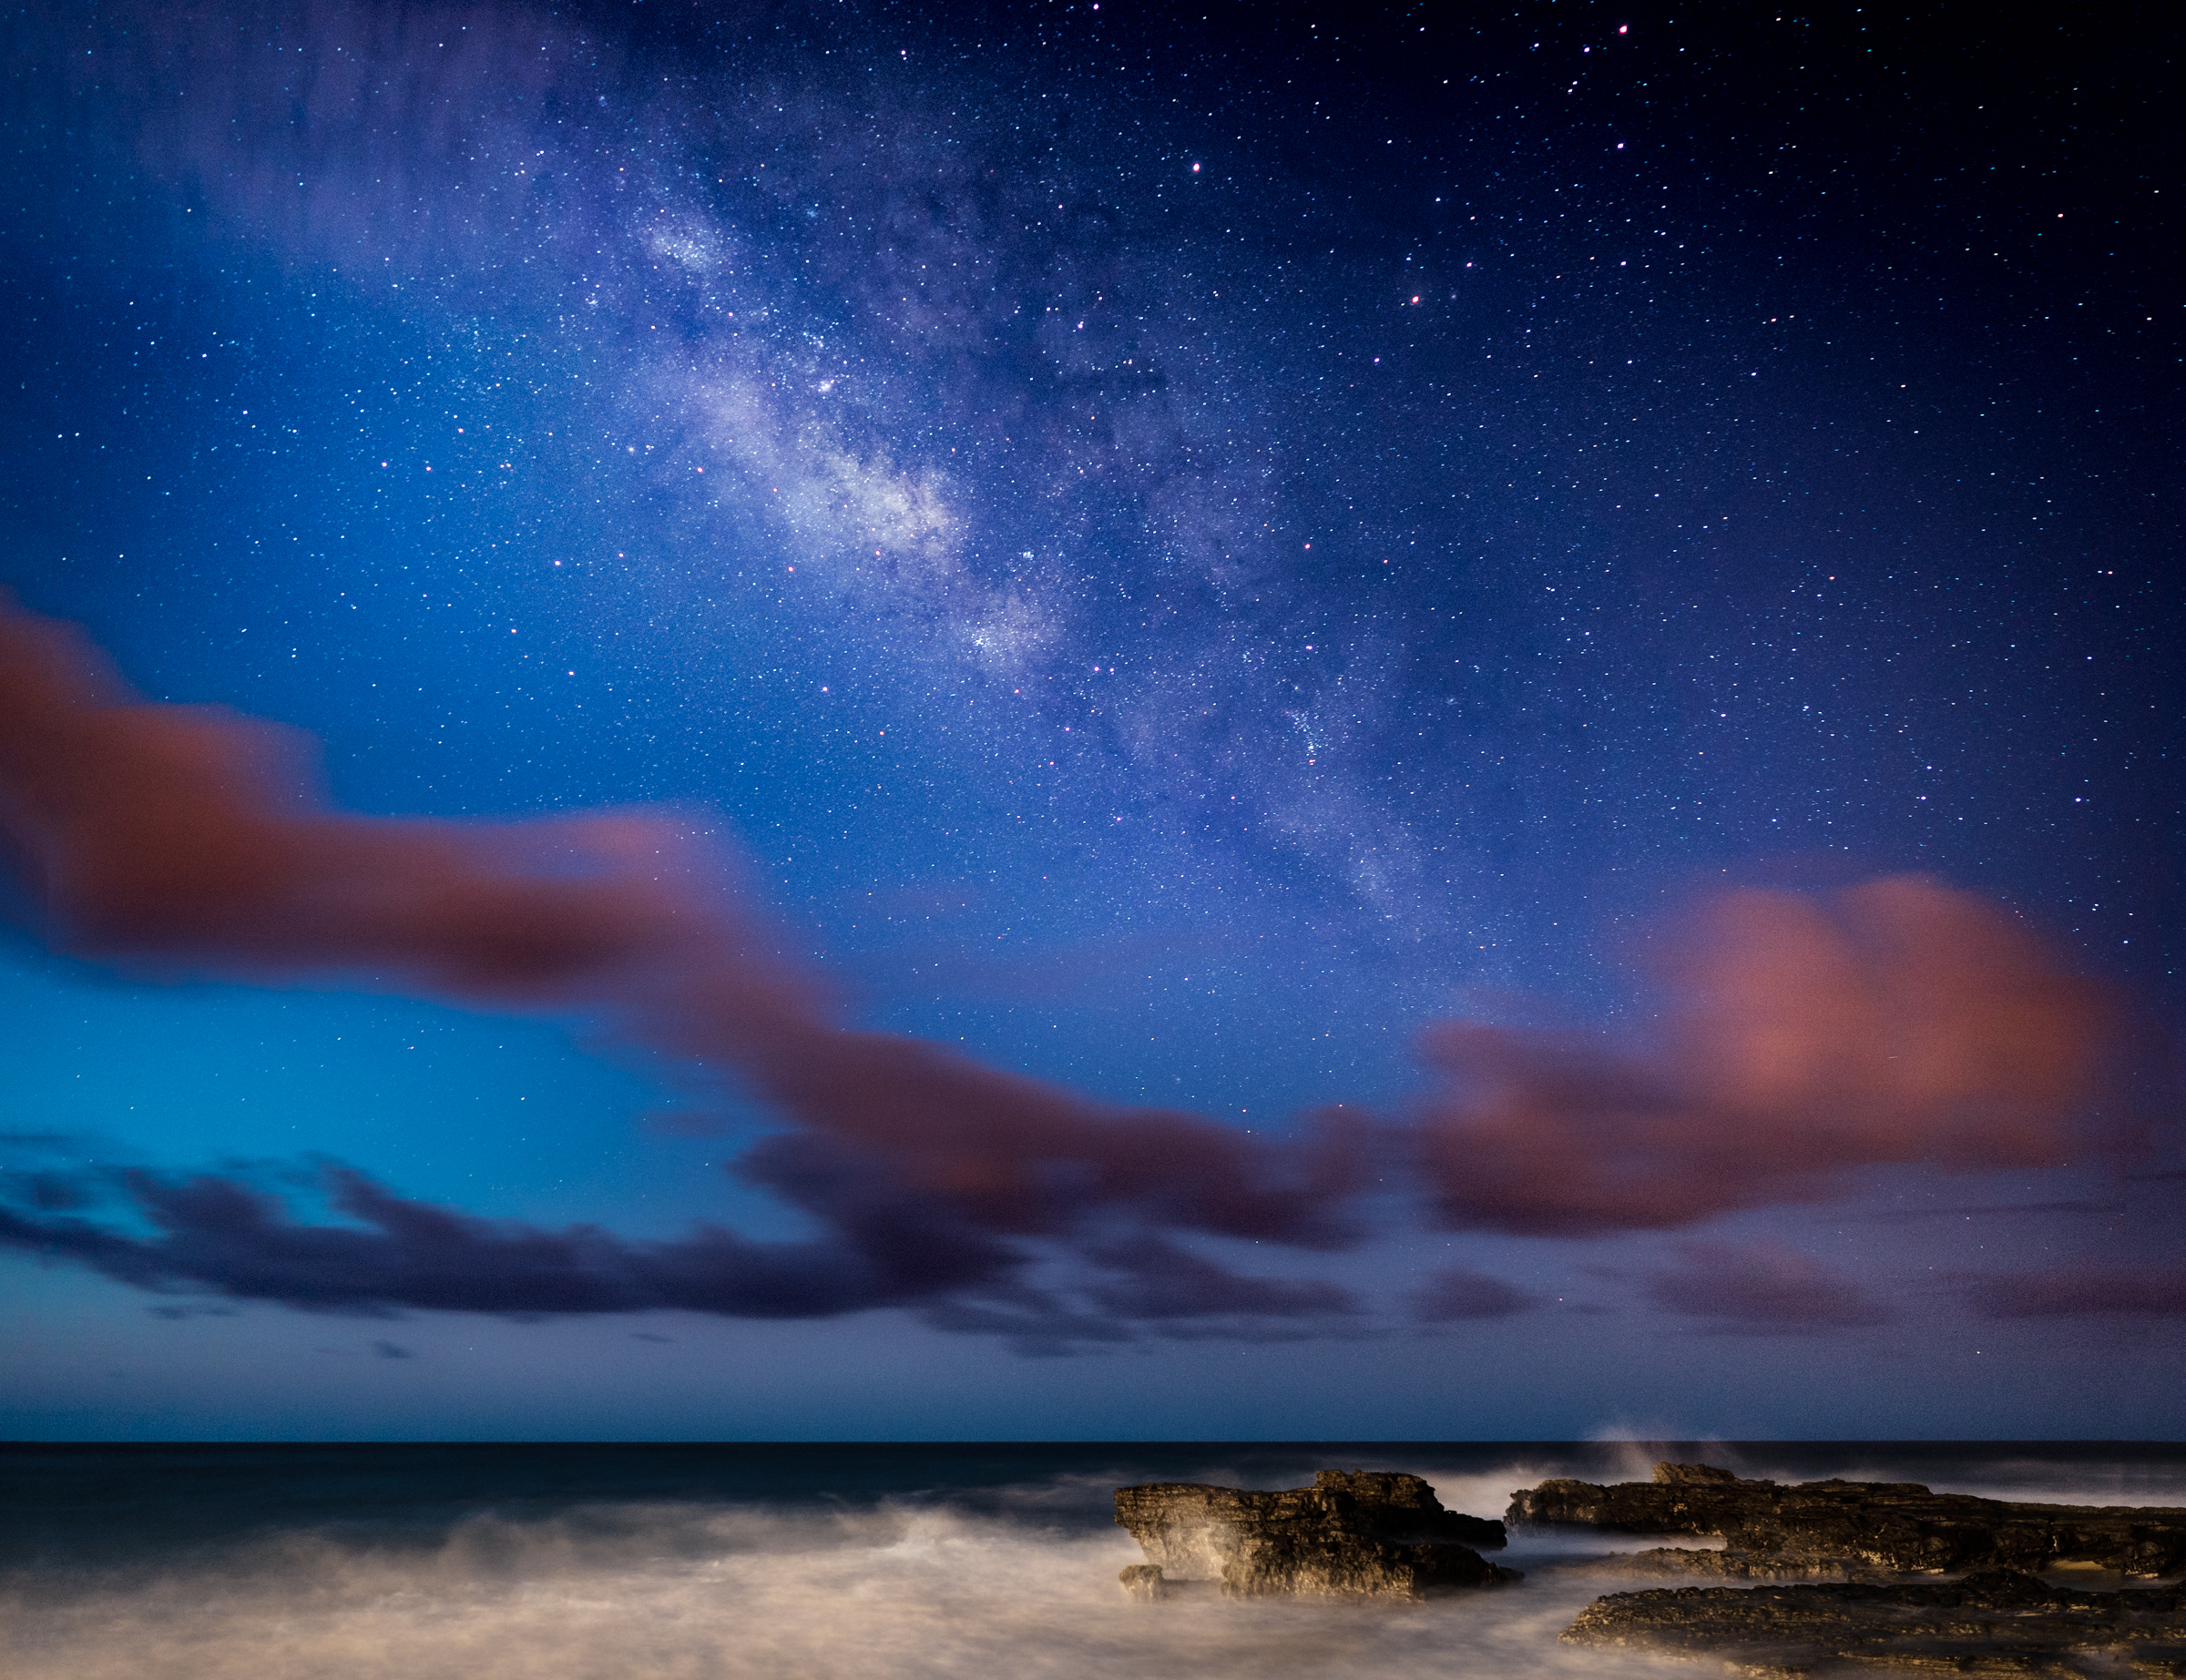 SANDY BEACH PARK & THE MILKY WAY...03.12.16 2 IMAGE PANO STITCH IN LIGHTROOM / EDITED IN LIGHTROOM & PHOTOSHOP CC 2015 SONY A7S II / ZEISS BATIS 25MM F/2 / 30 SEC. / F/2 / ISO 1000